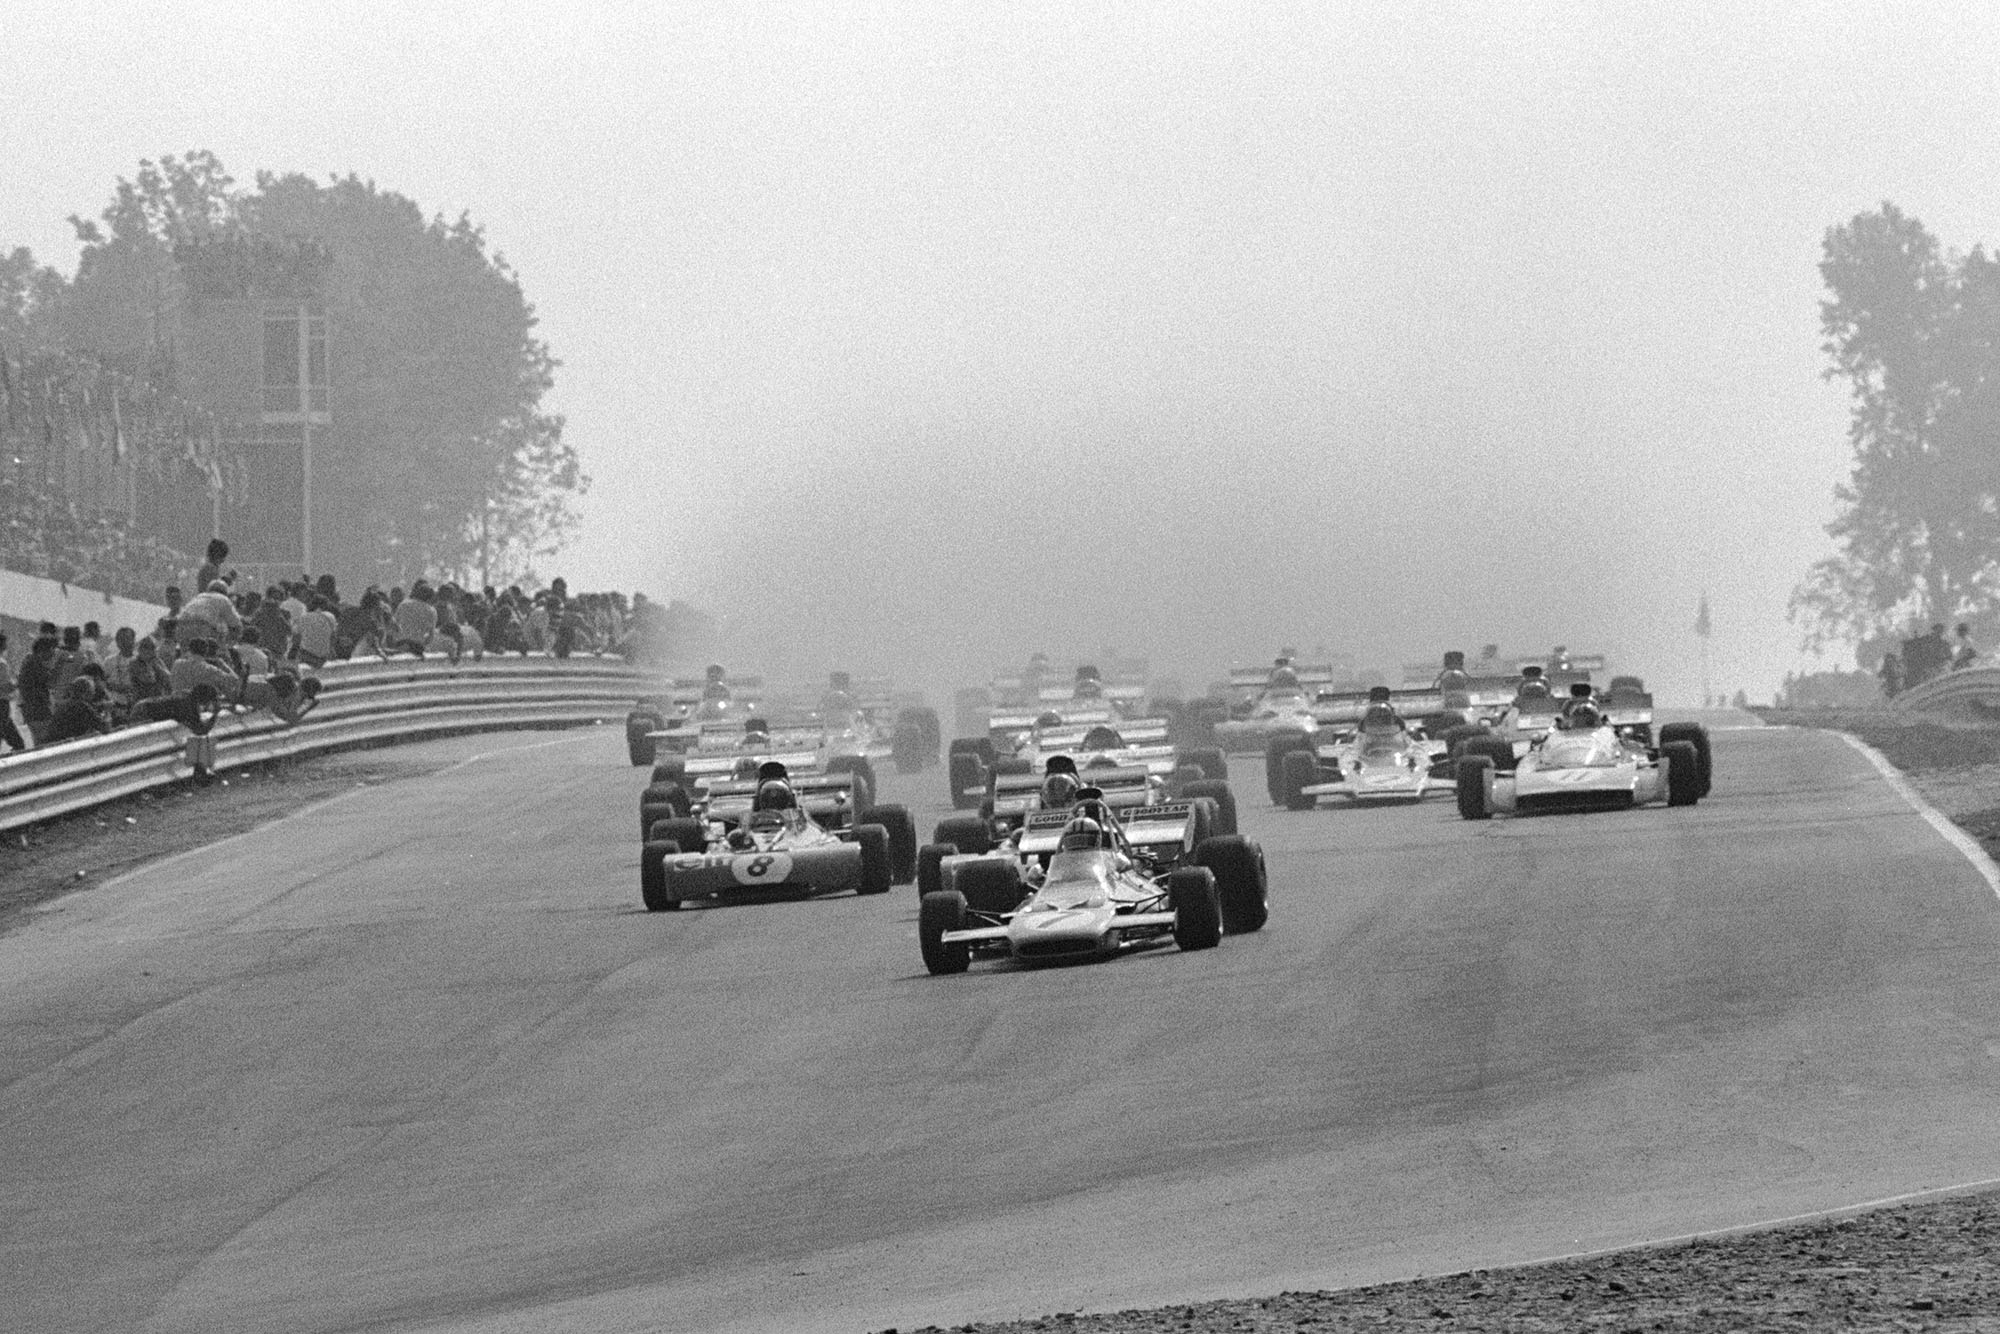 The 1971 United States Grand Prix gets underway in wet conditions.